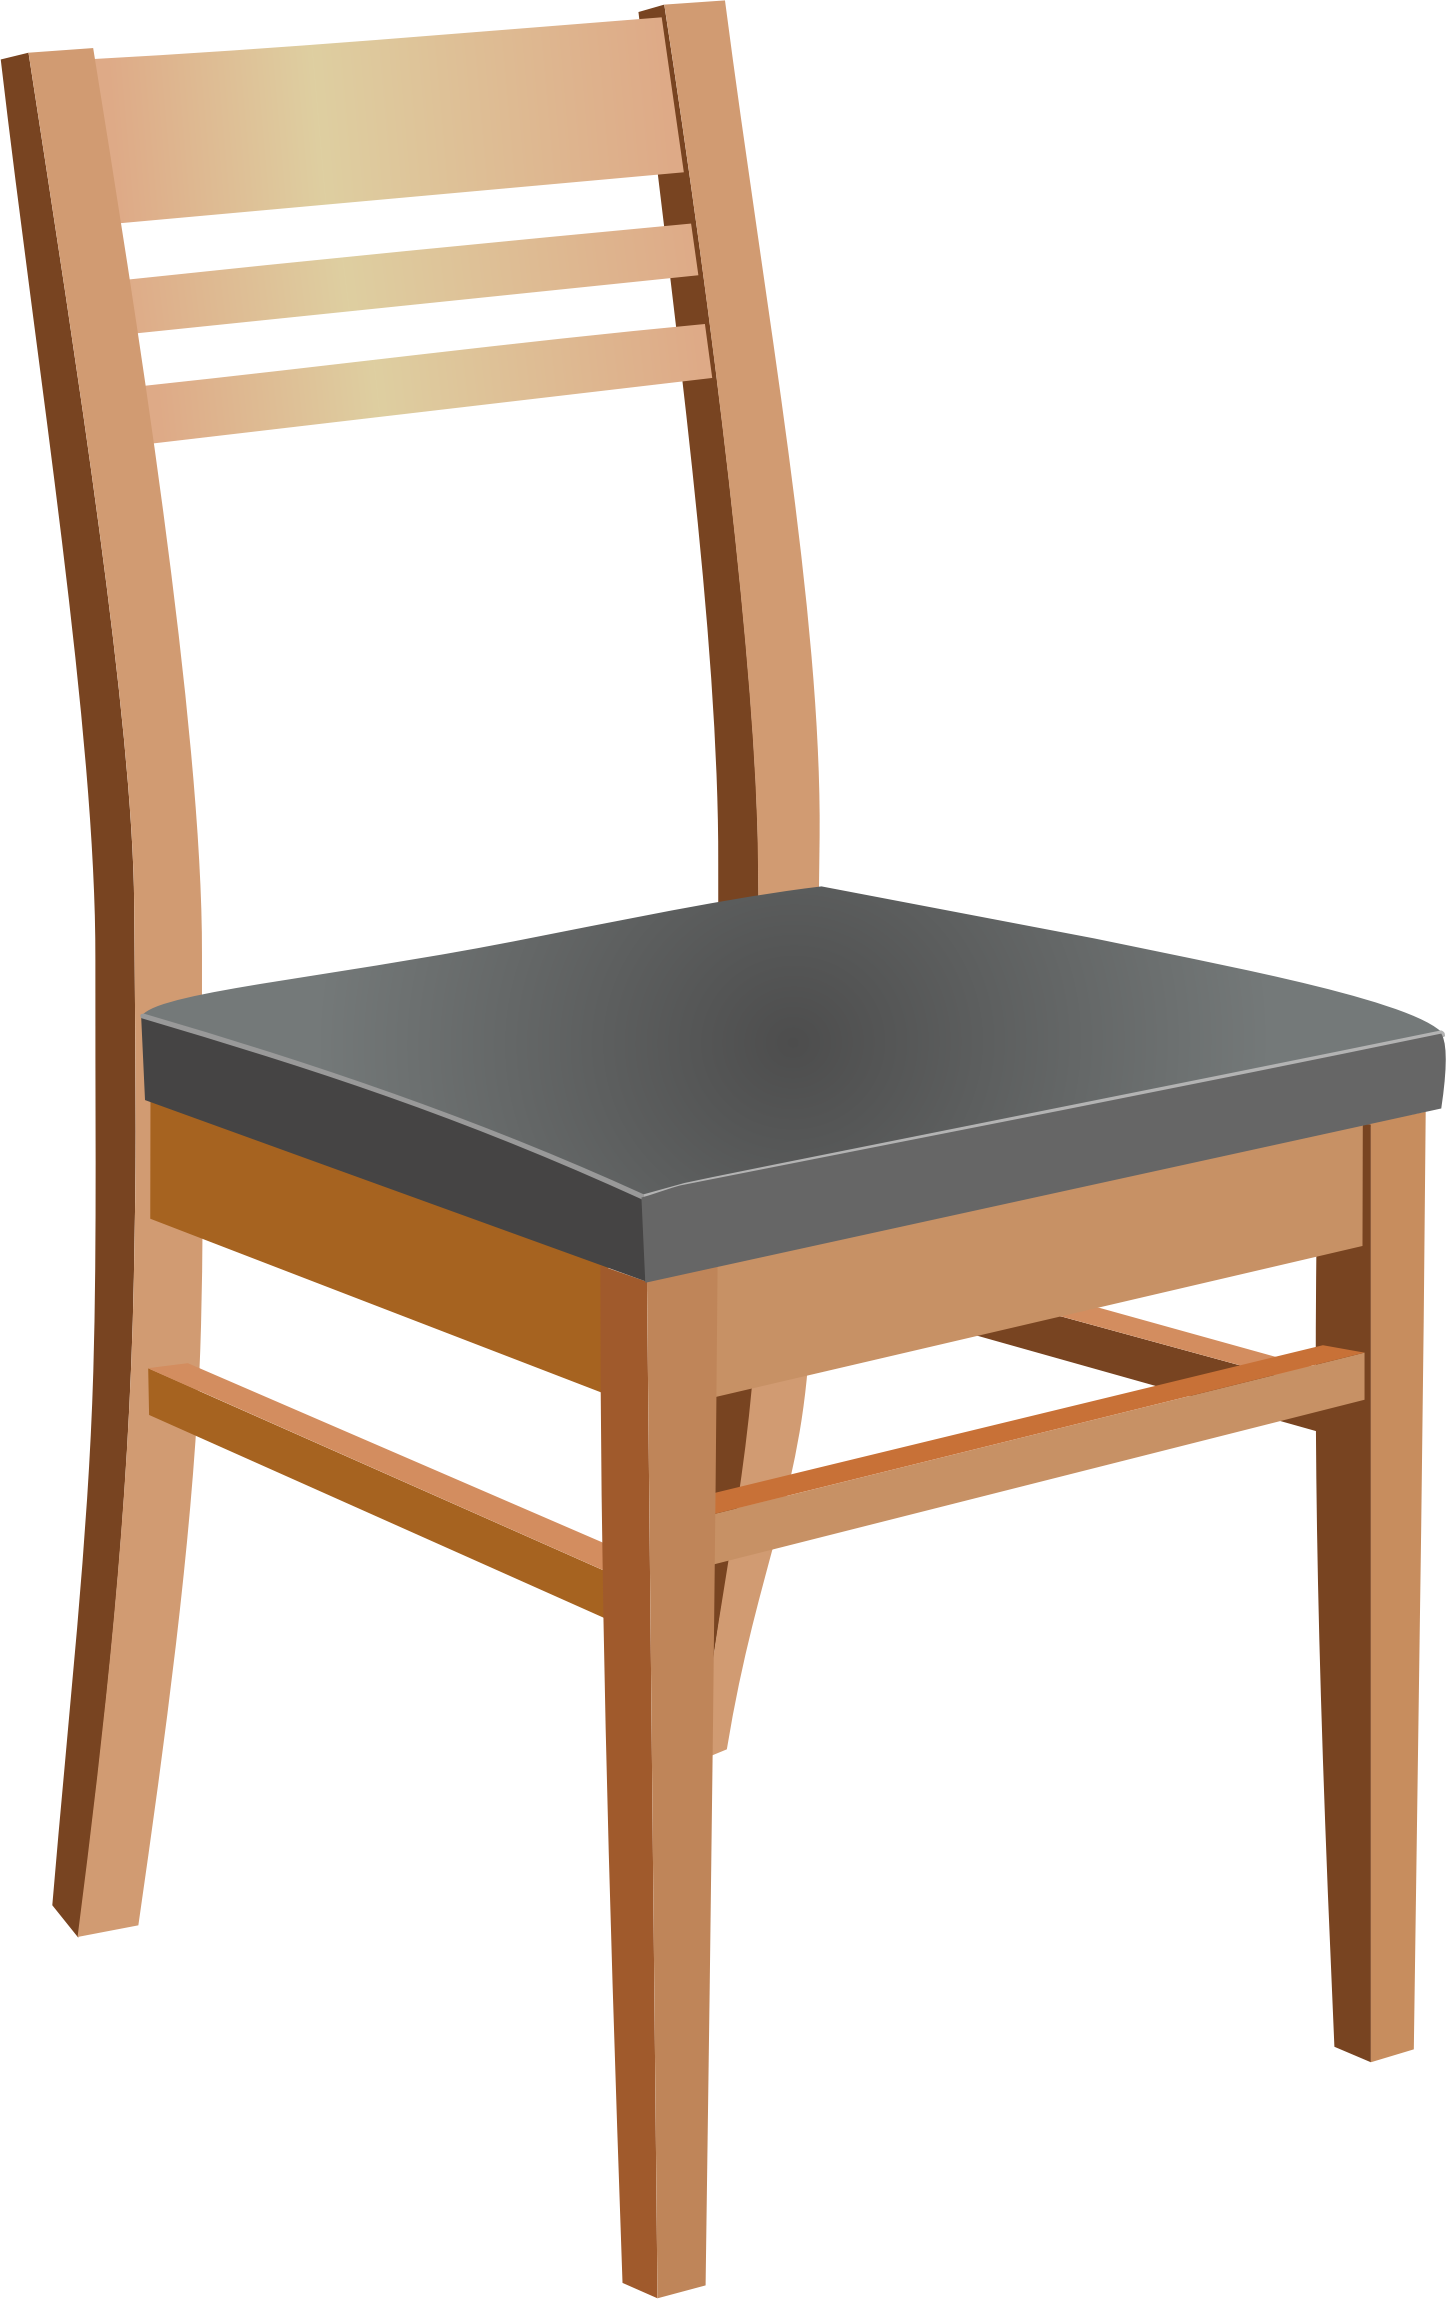 Chair clipart #13, Download drawings